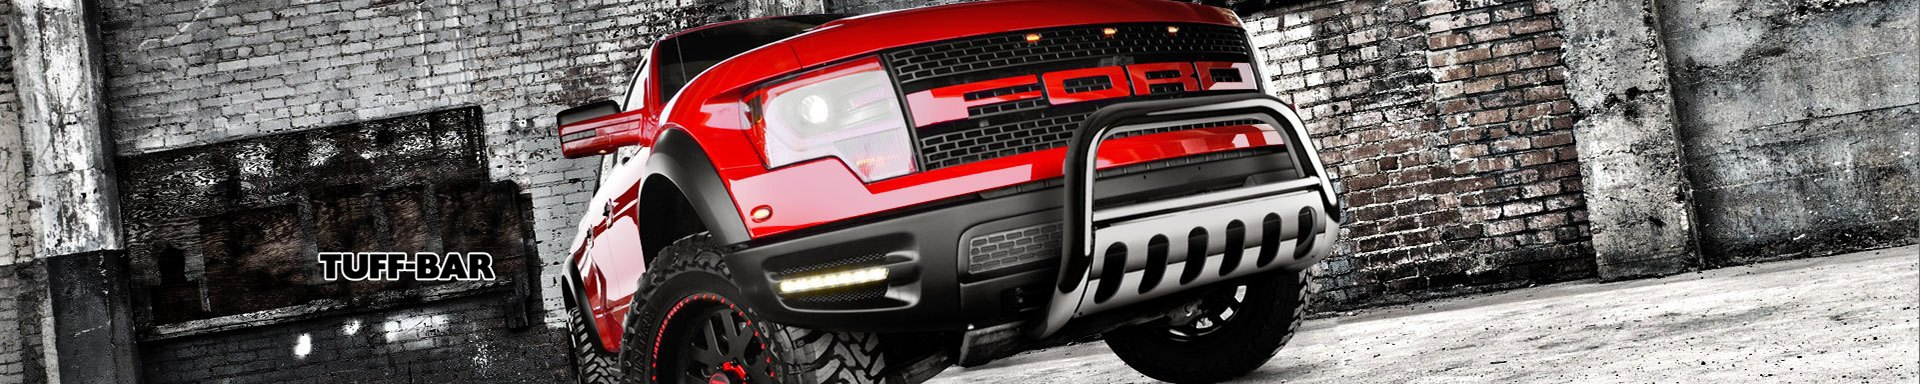 Tuff-Bar Off-Road Bumpers